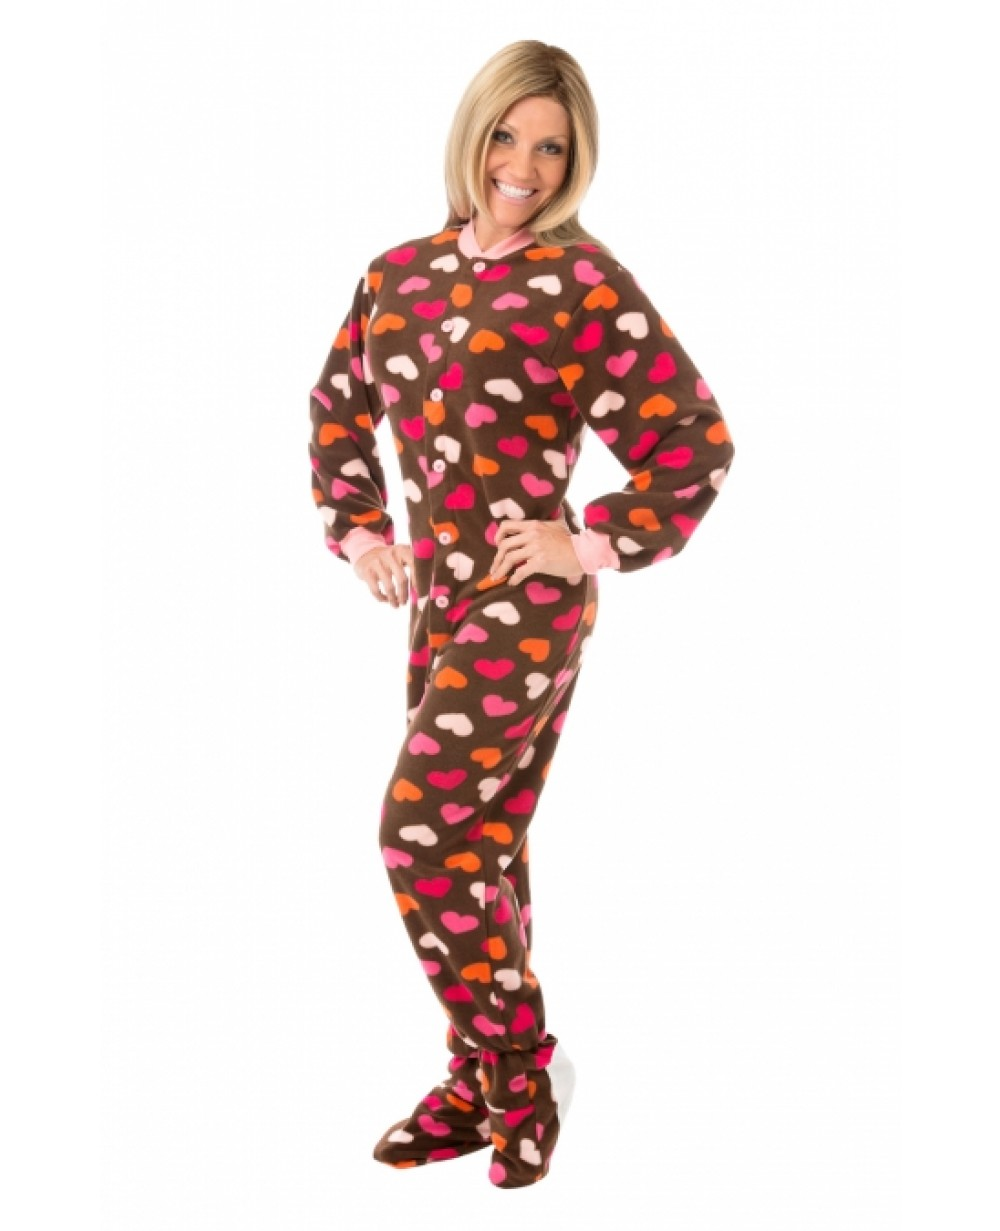 Brown Footie Pajamas For Adults - Breeze Clothing